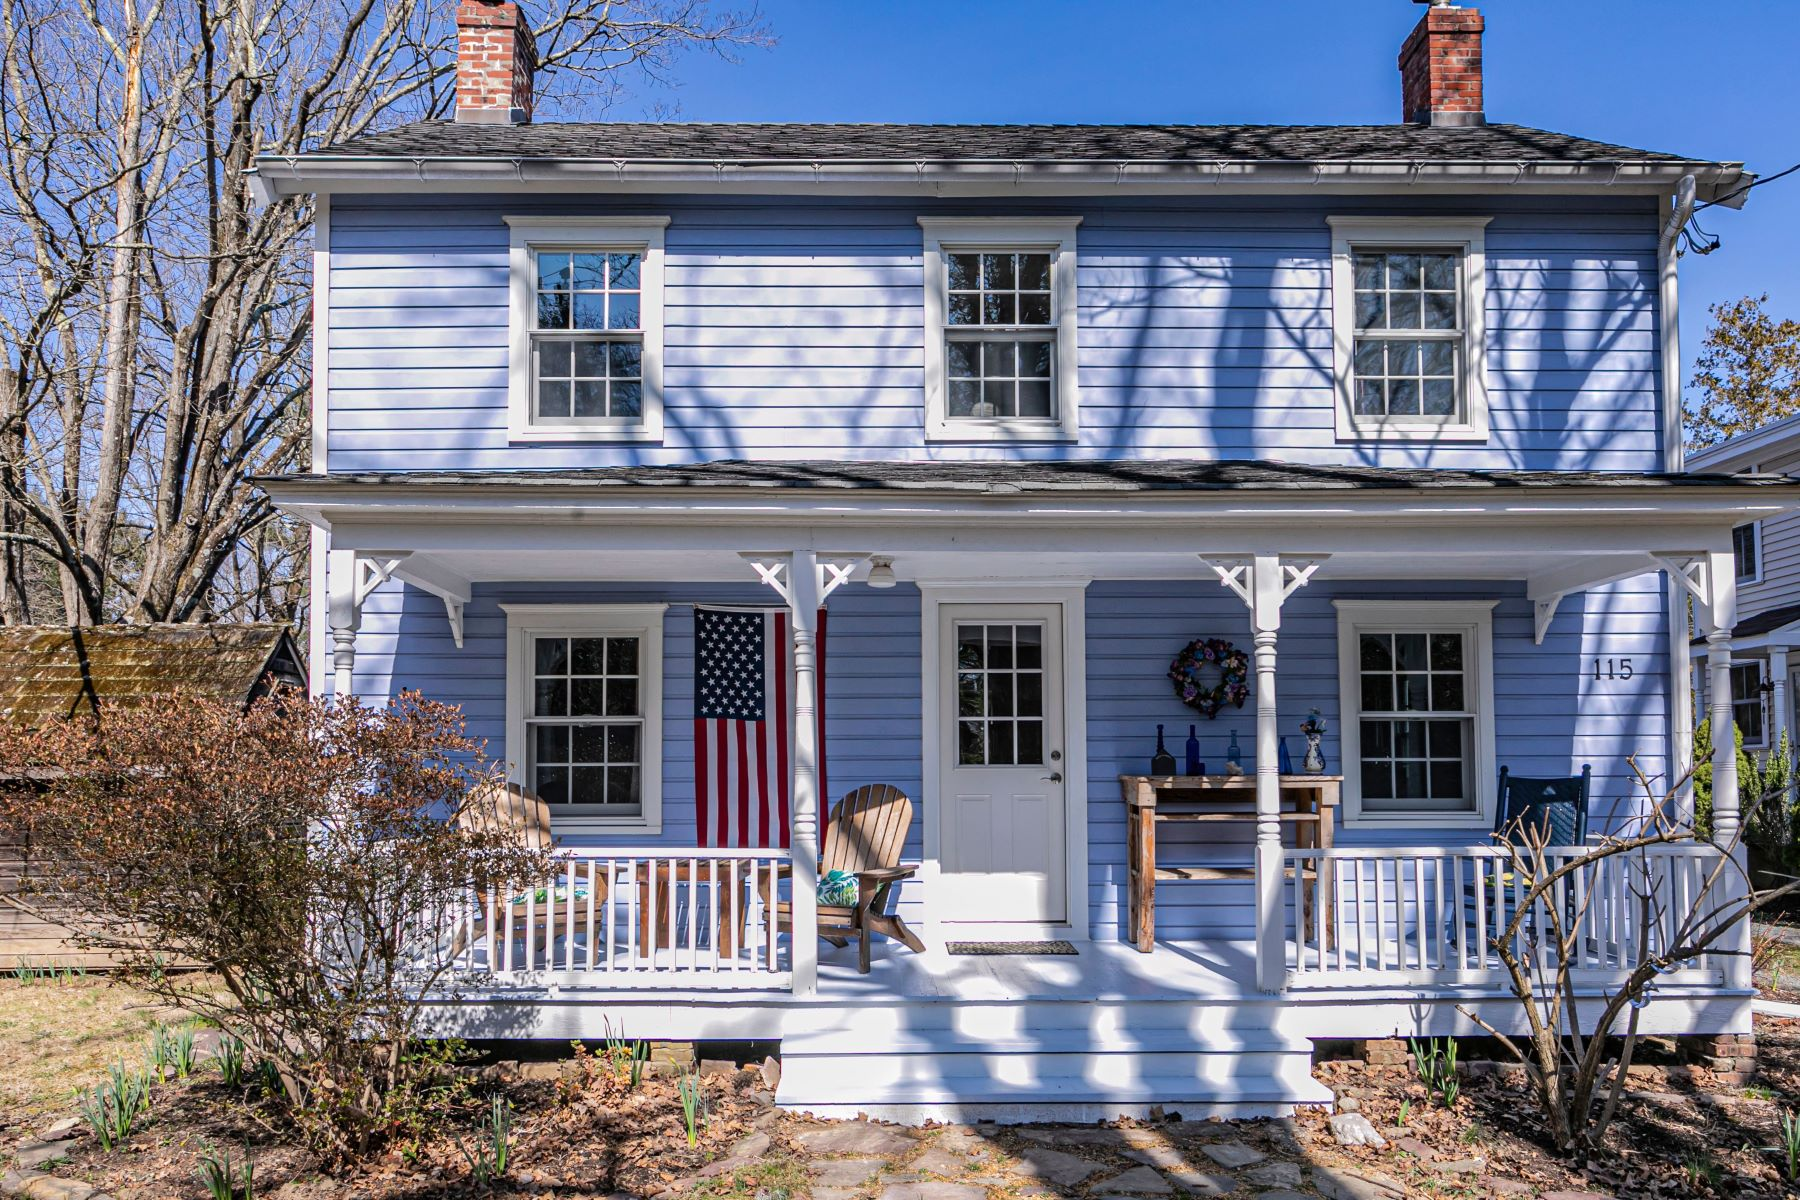 Property のために 売買 アット A True Colonial Home Full of Cheerful Surprises 115 Mountain Avenue, Princeton, ニュージャージー 08540 アメリカ